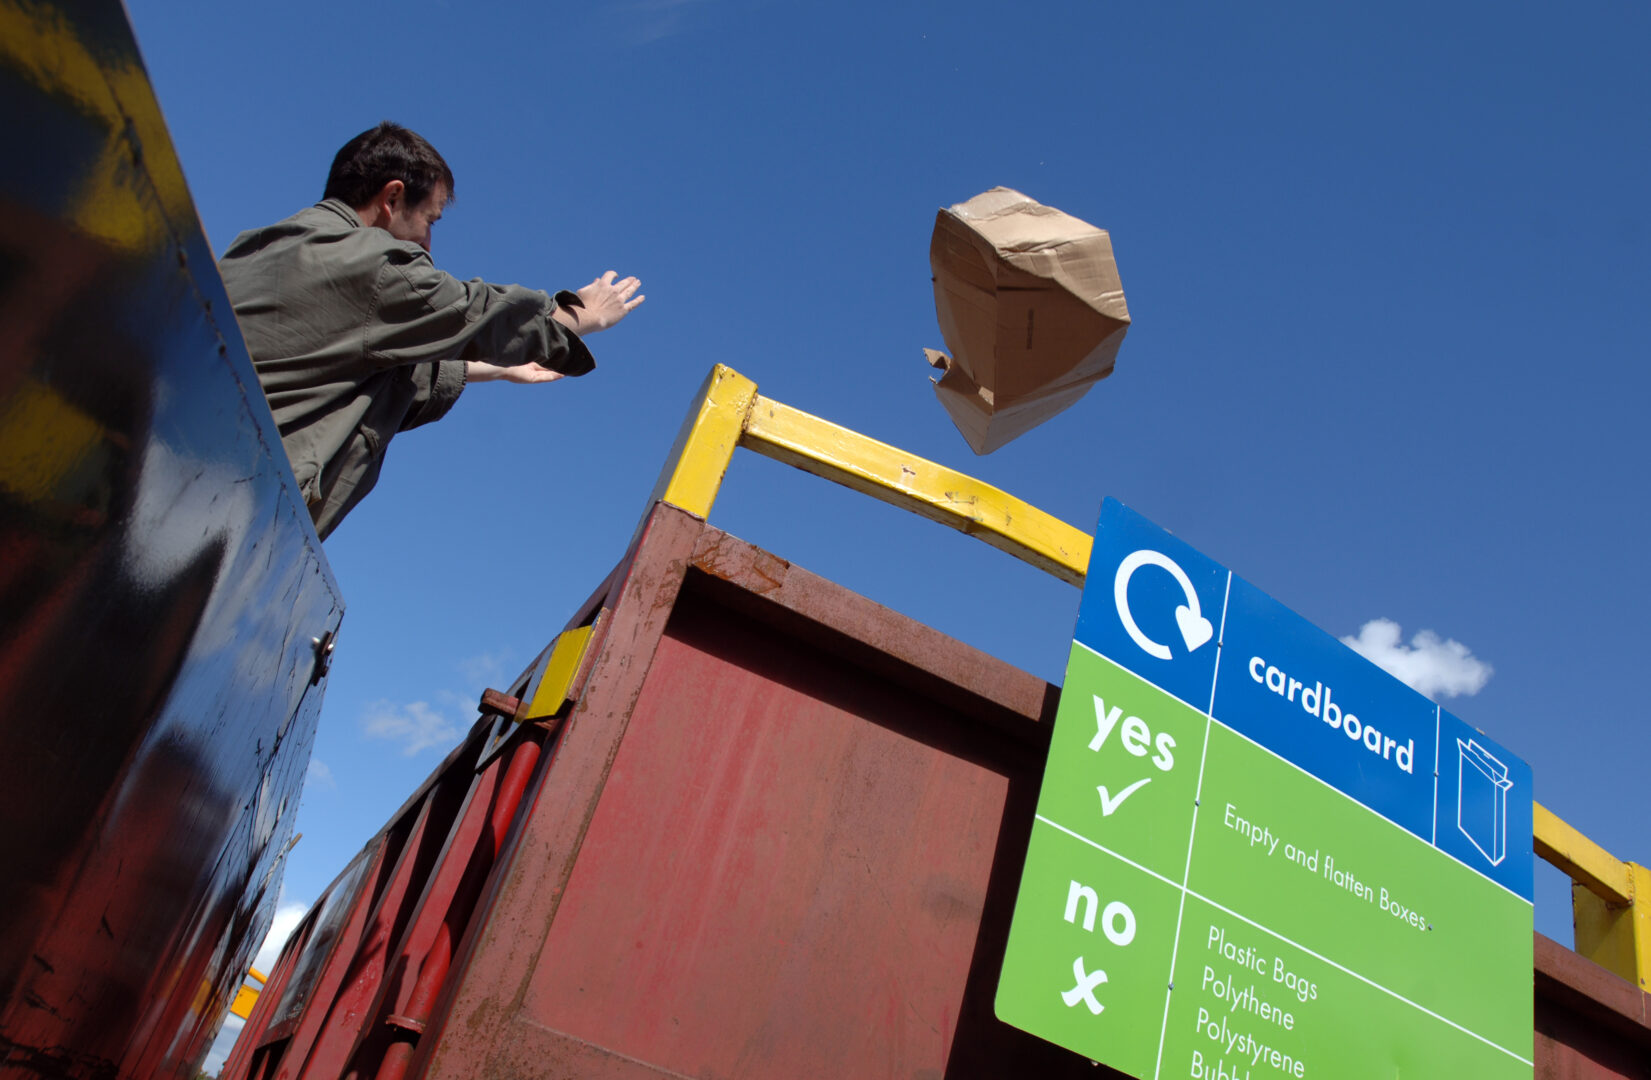 Changes at Sherborne household recycling centre